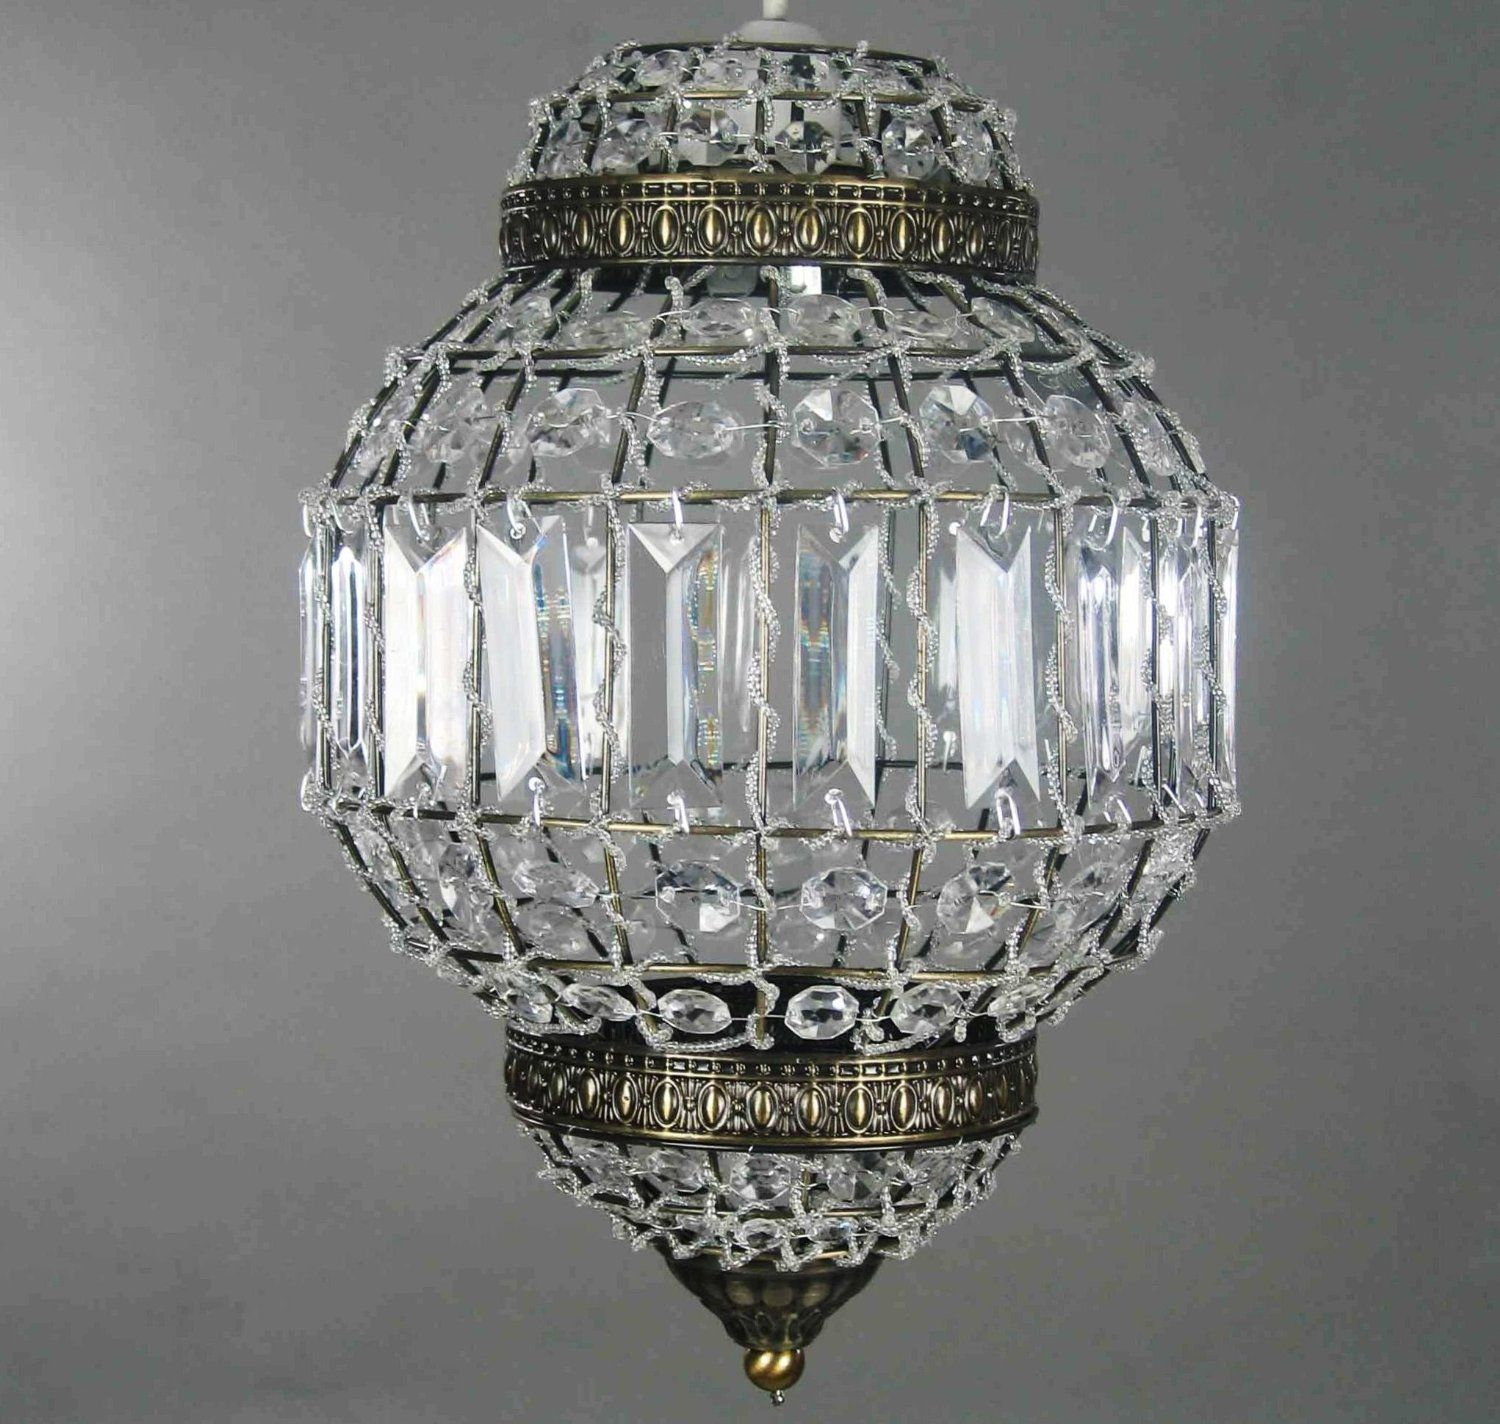 This beautiful Moroccan lantern style pendant combines clear